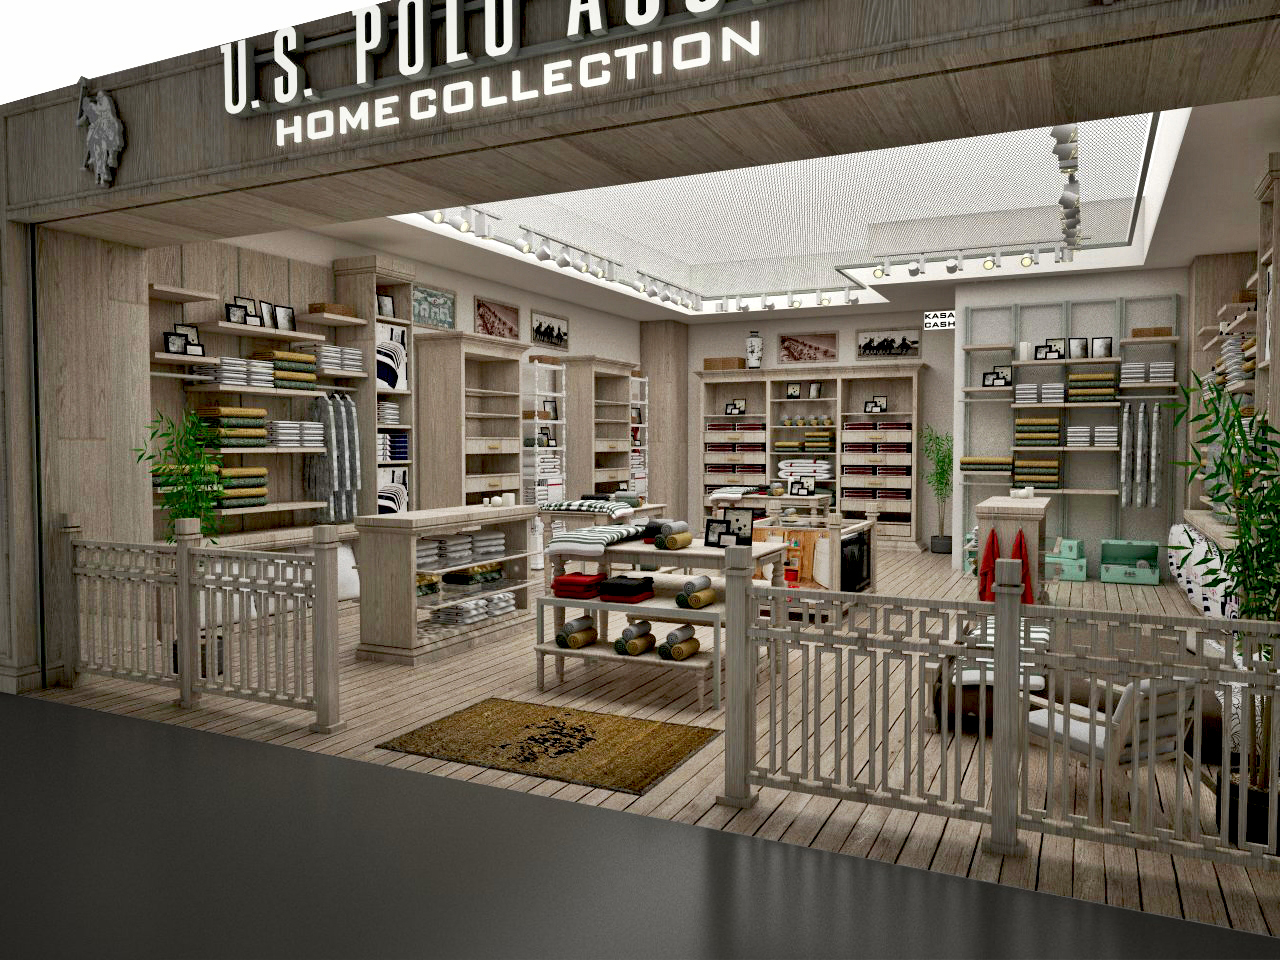 U.S. POLO ASSN.HOME COLLECTION NEW CONCEPT INTERIOR SCEEN